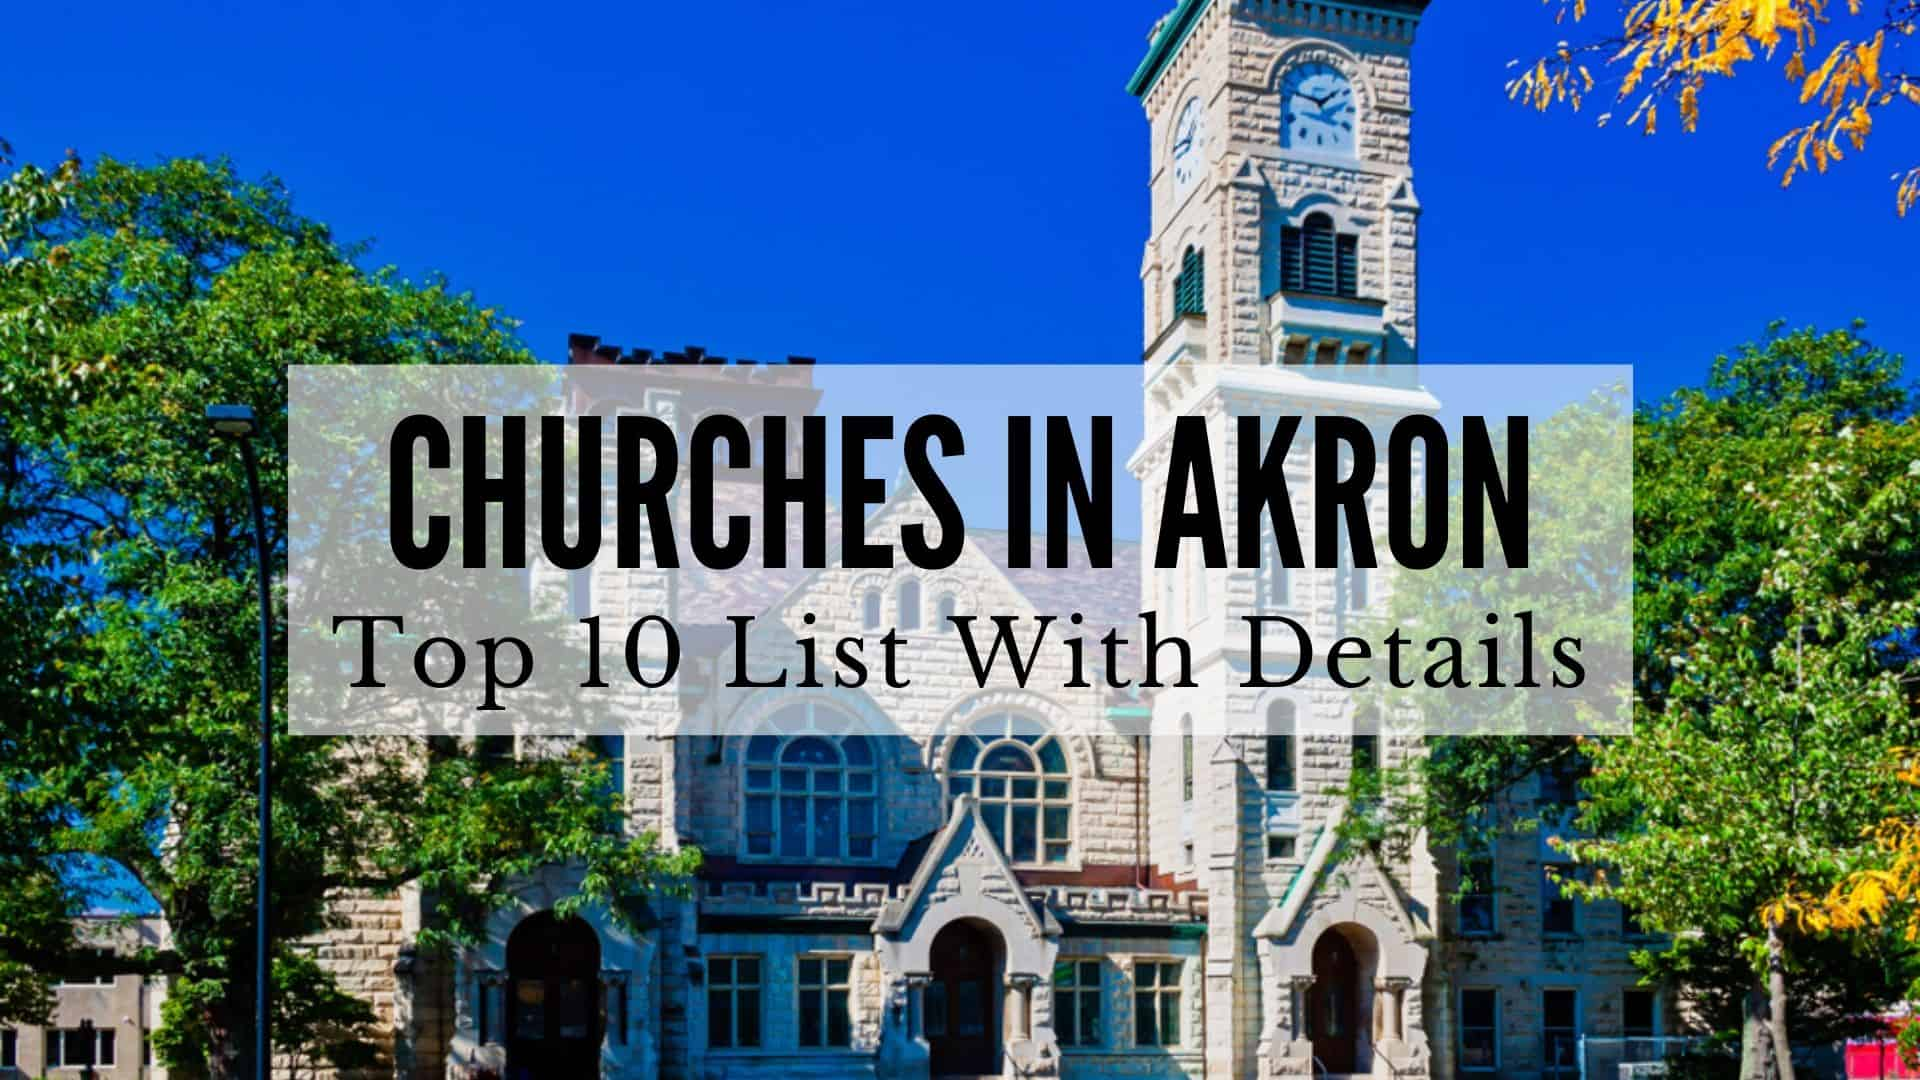 Churches in Akron